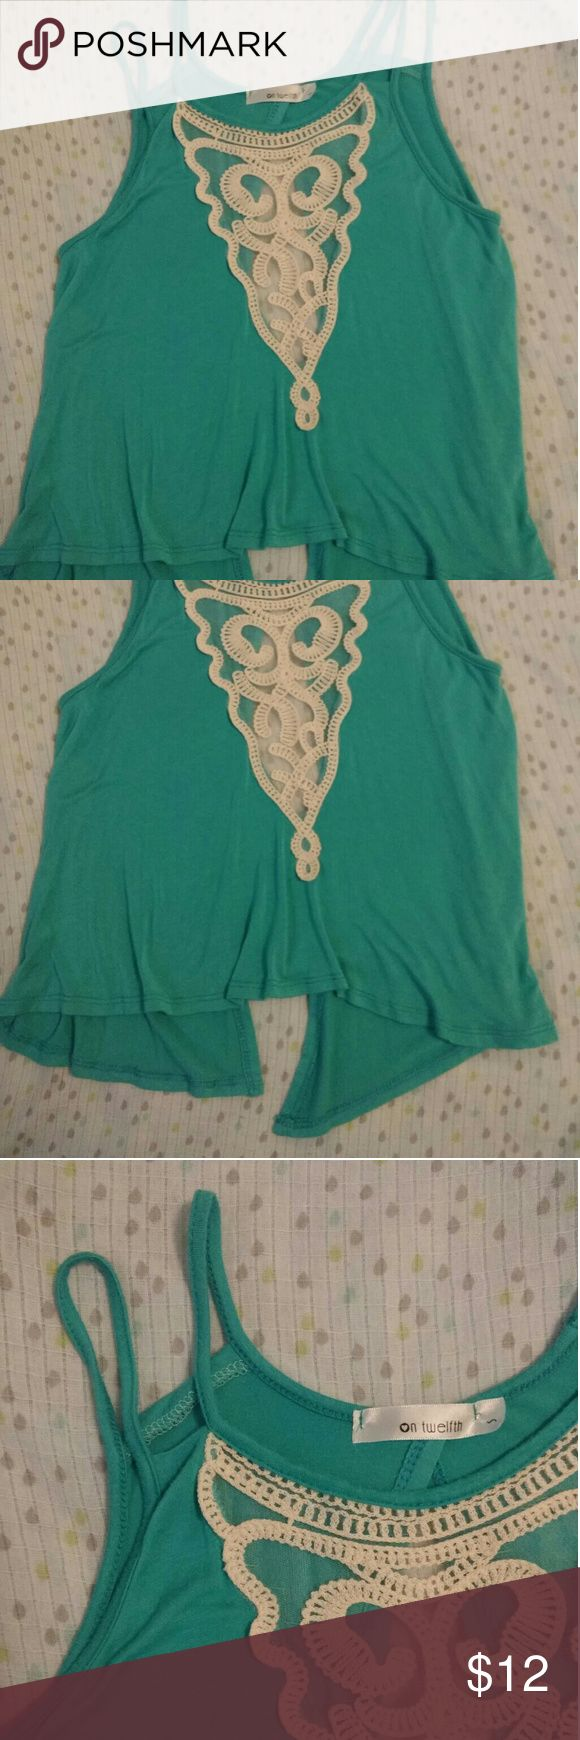 Teal tank top Very cute real tank top with lace accented see through front. And a slit up the whole back side. Like new condition! on twelfth Tops Tank Tops